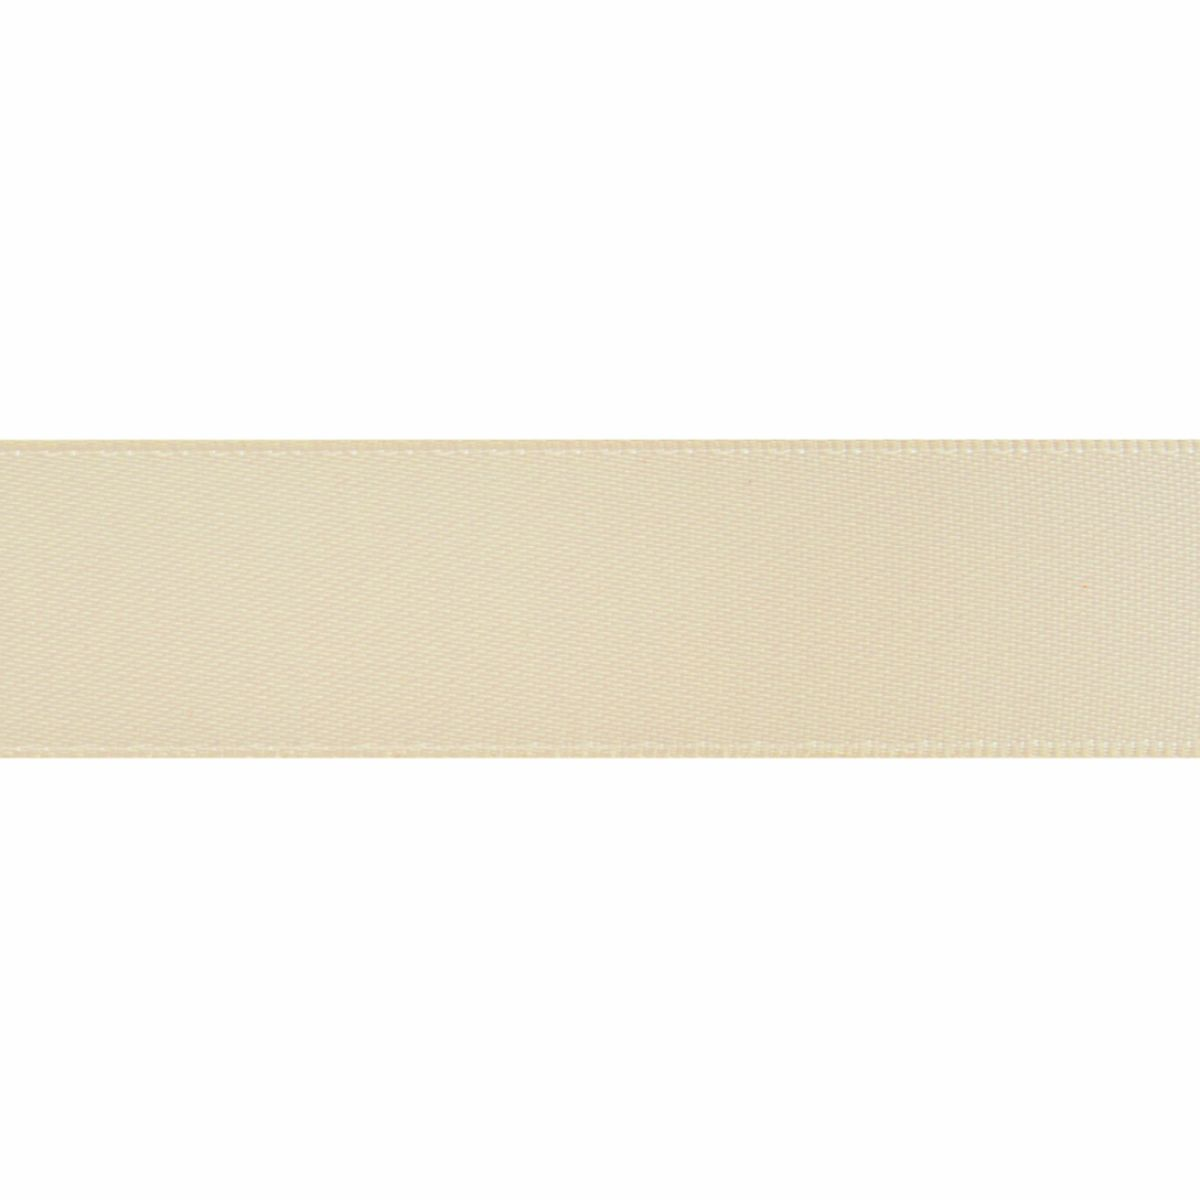 Cream Double Satin Ribbon 5m rolls from 3mm to 36mm wide